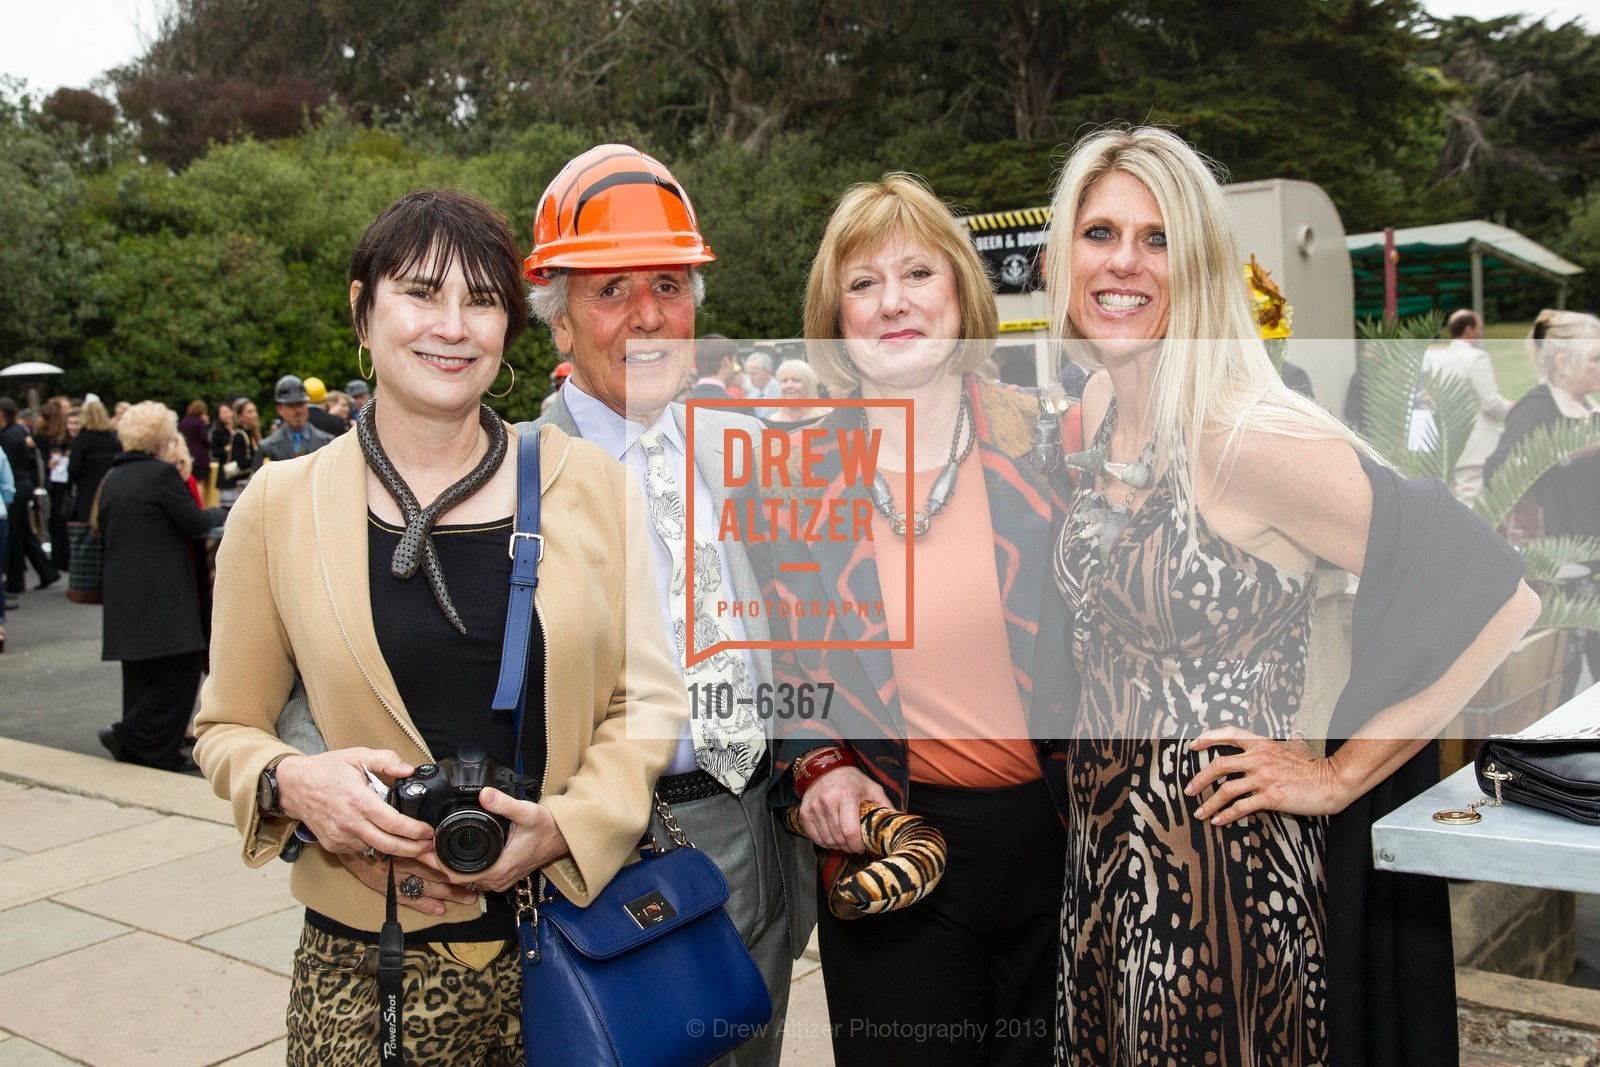 Kathleen Maher, William Beech, Susan Beech, Lori Sebastian, ZooFest 2013 Hard Hat & Tails, US, May 11th, 2013,Drew Altizer, Drew Altizer Photography, full-service agency, private events, San Francisco photographer, photographer california